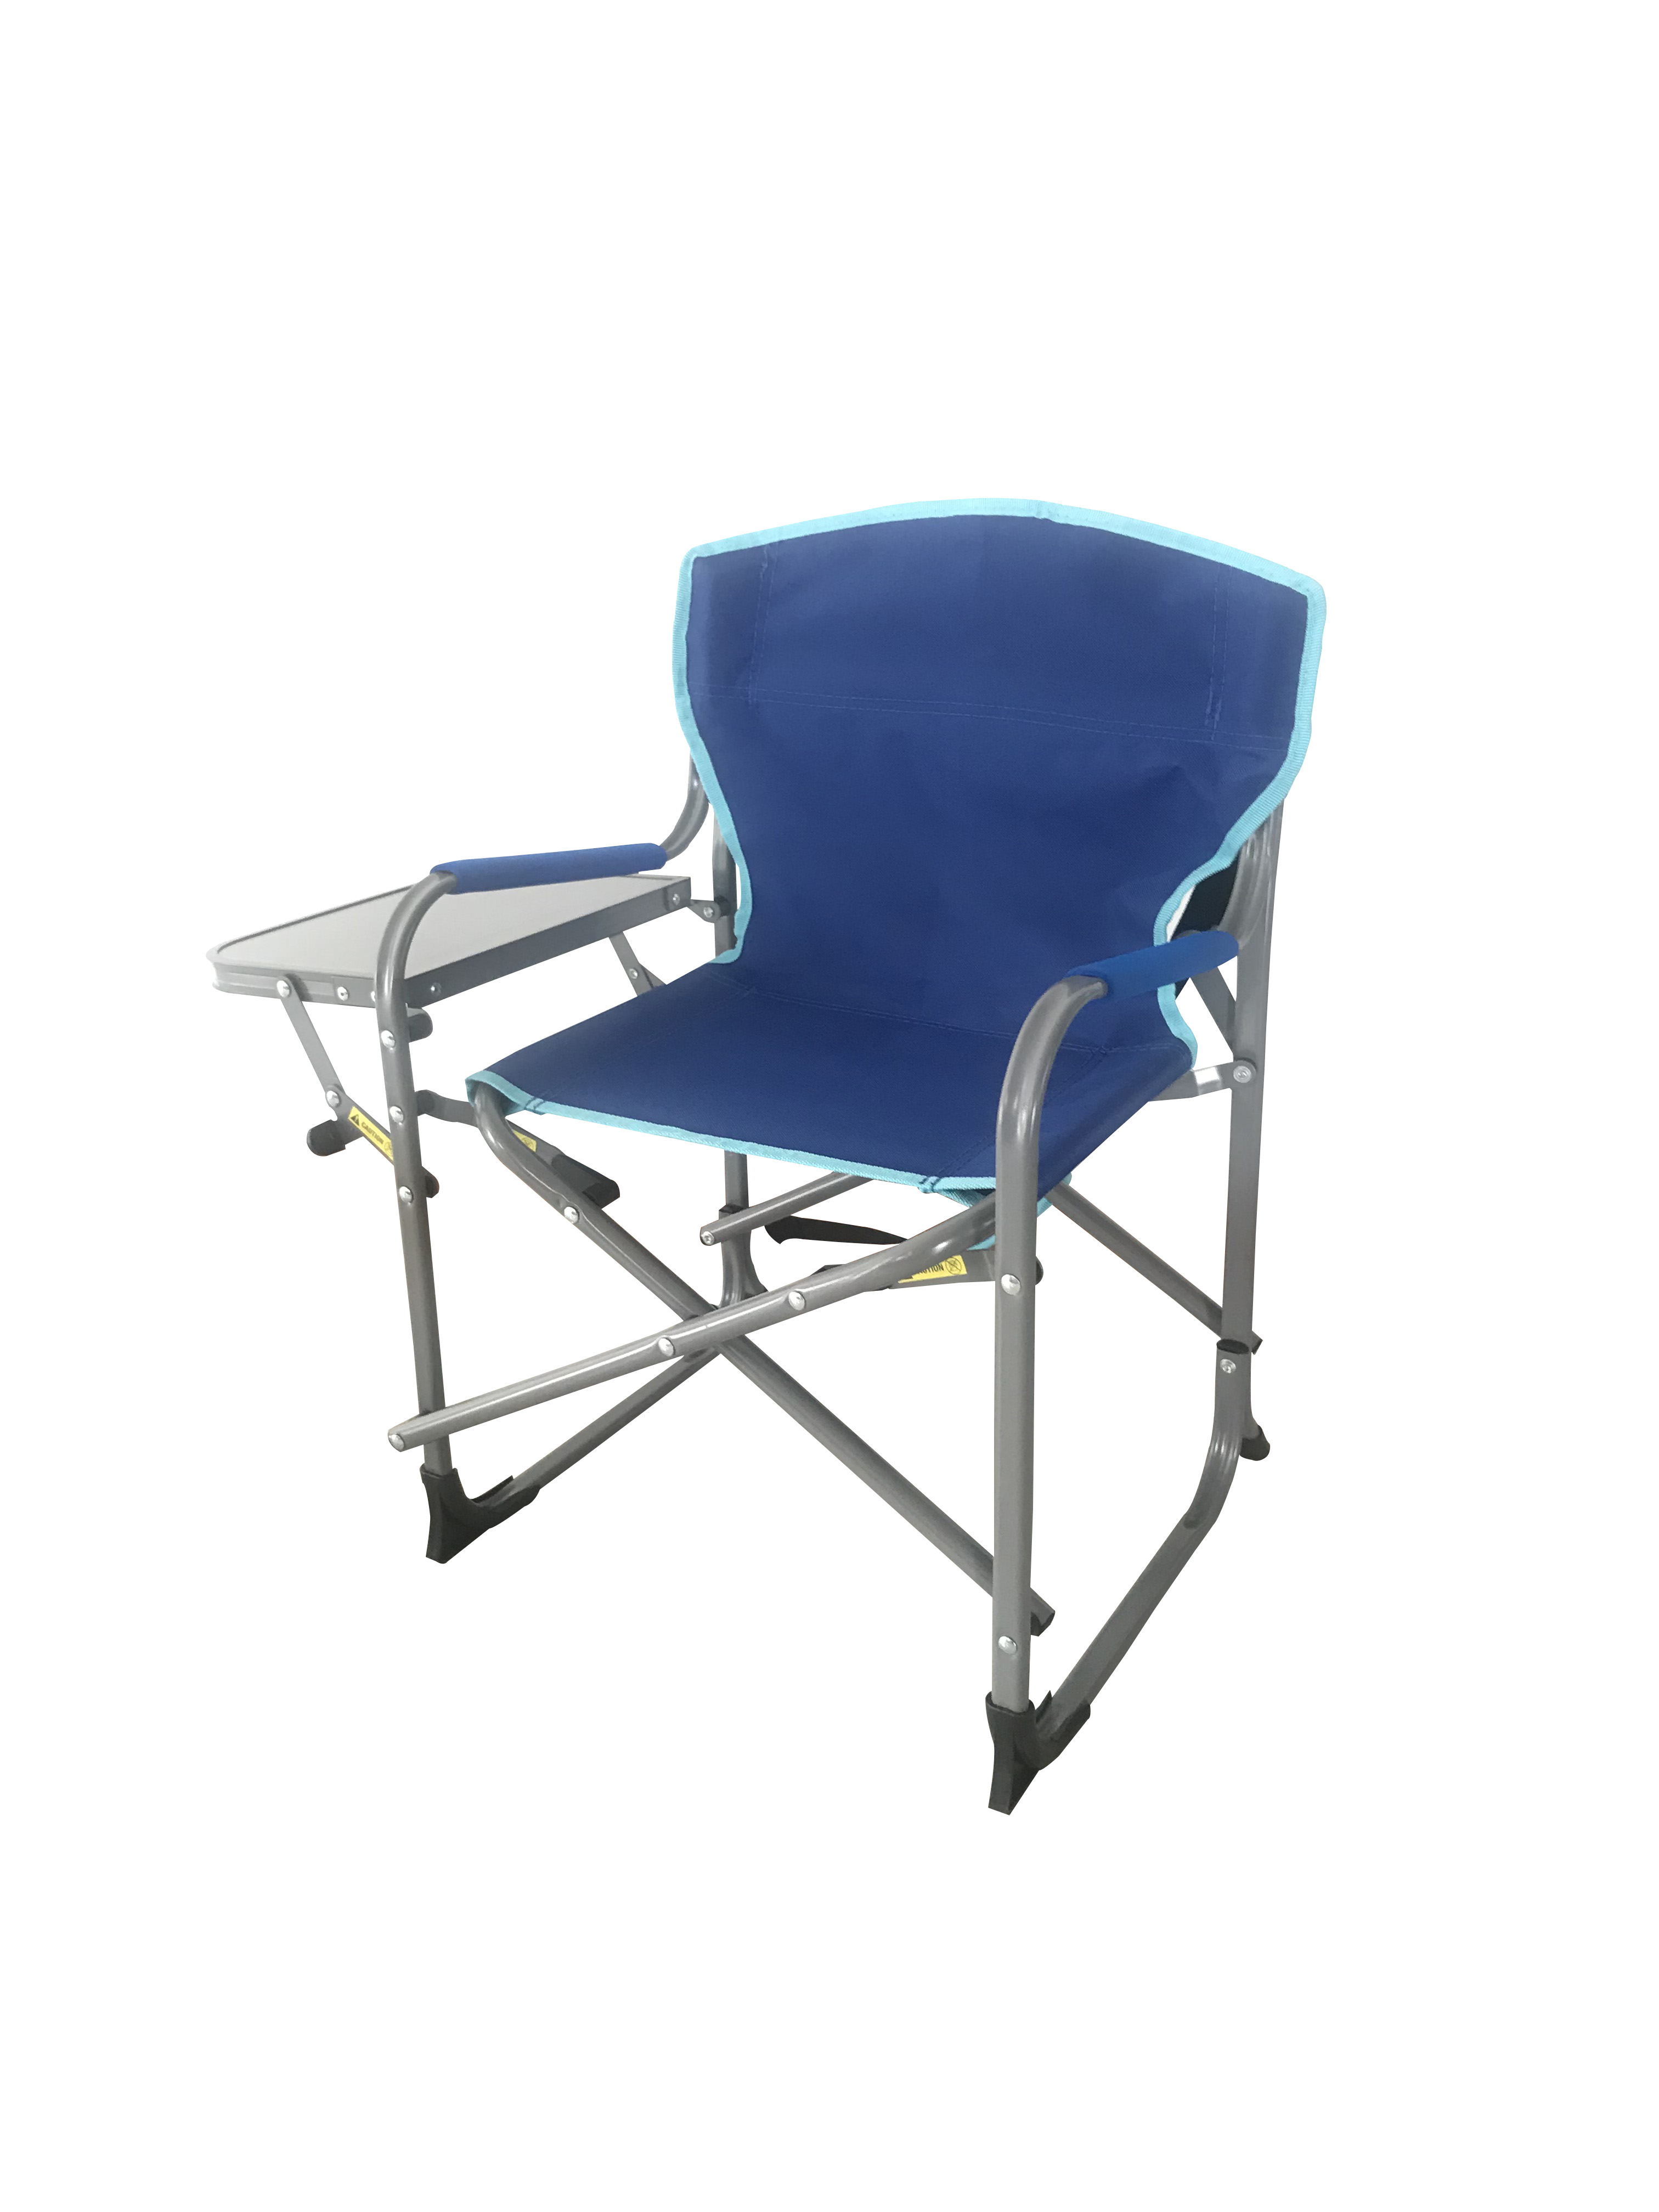 Superb Ozark Trail Kids Director Camping Chair With Side Table Ibusinesslaw Wood Chair Design Ideas Ibusinesslaworg